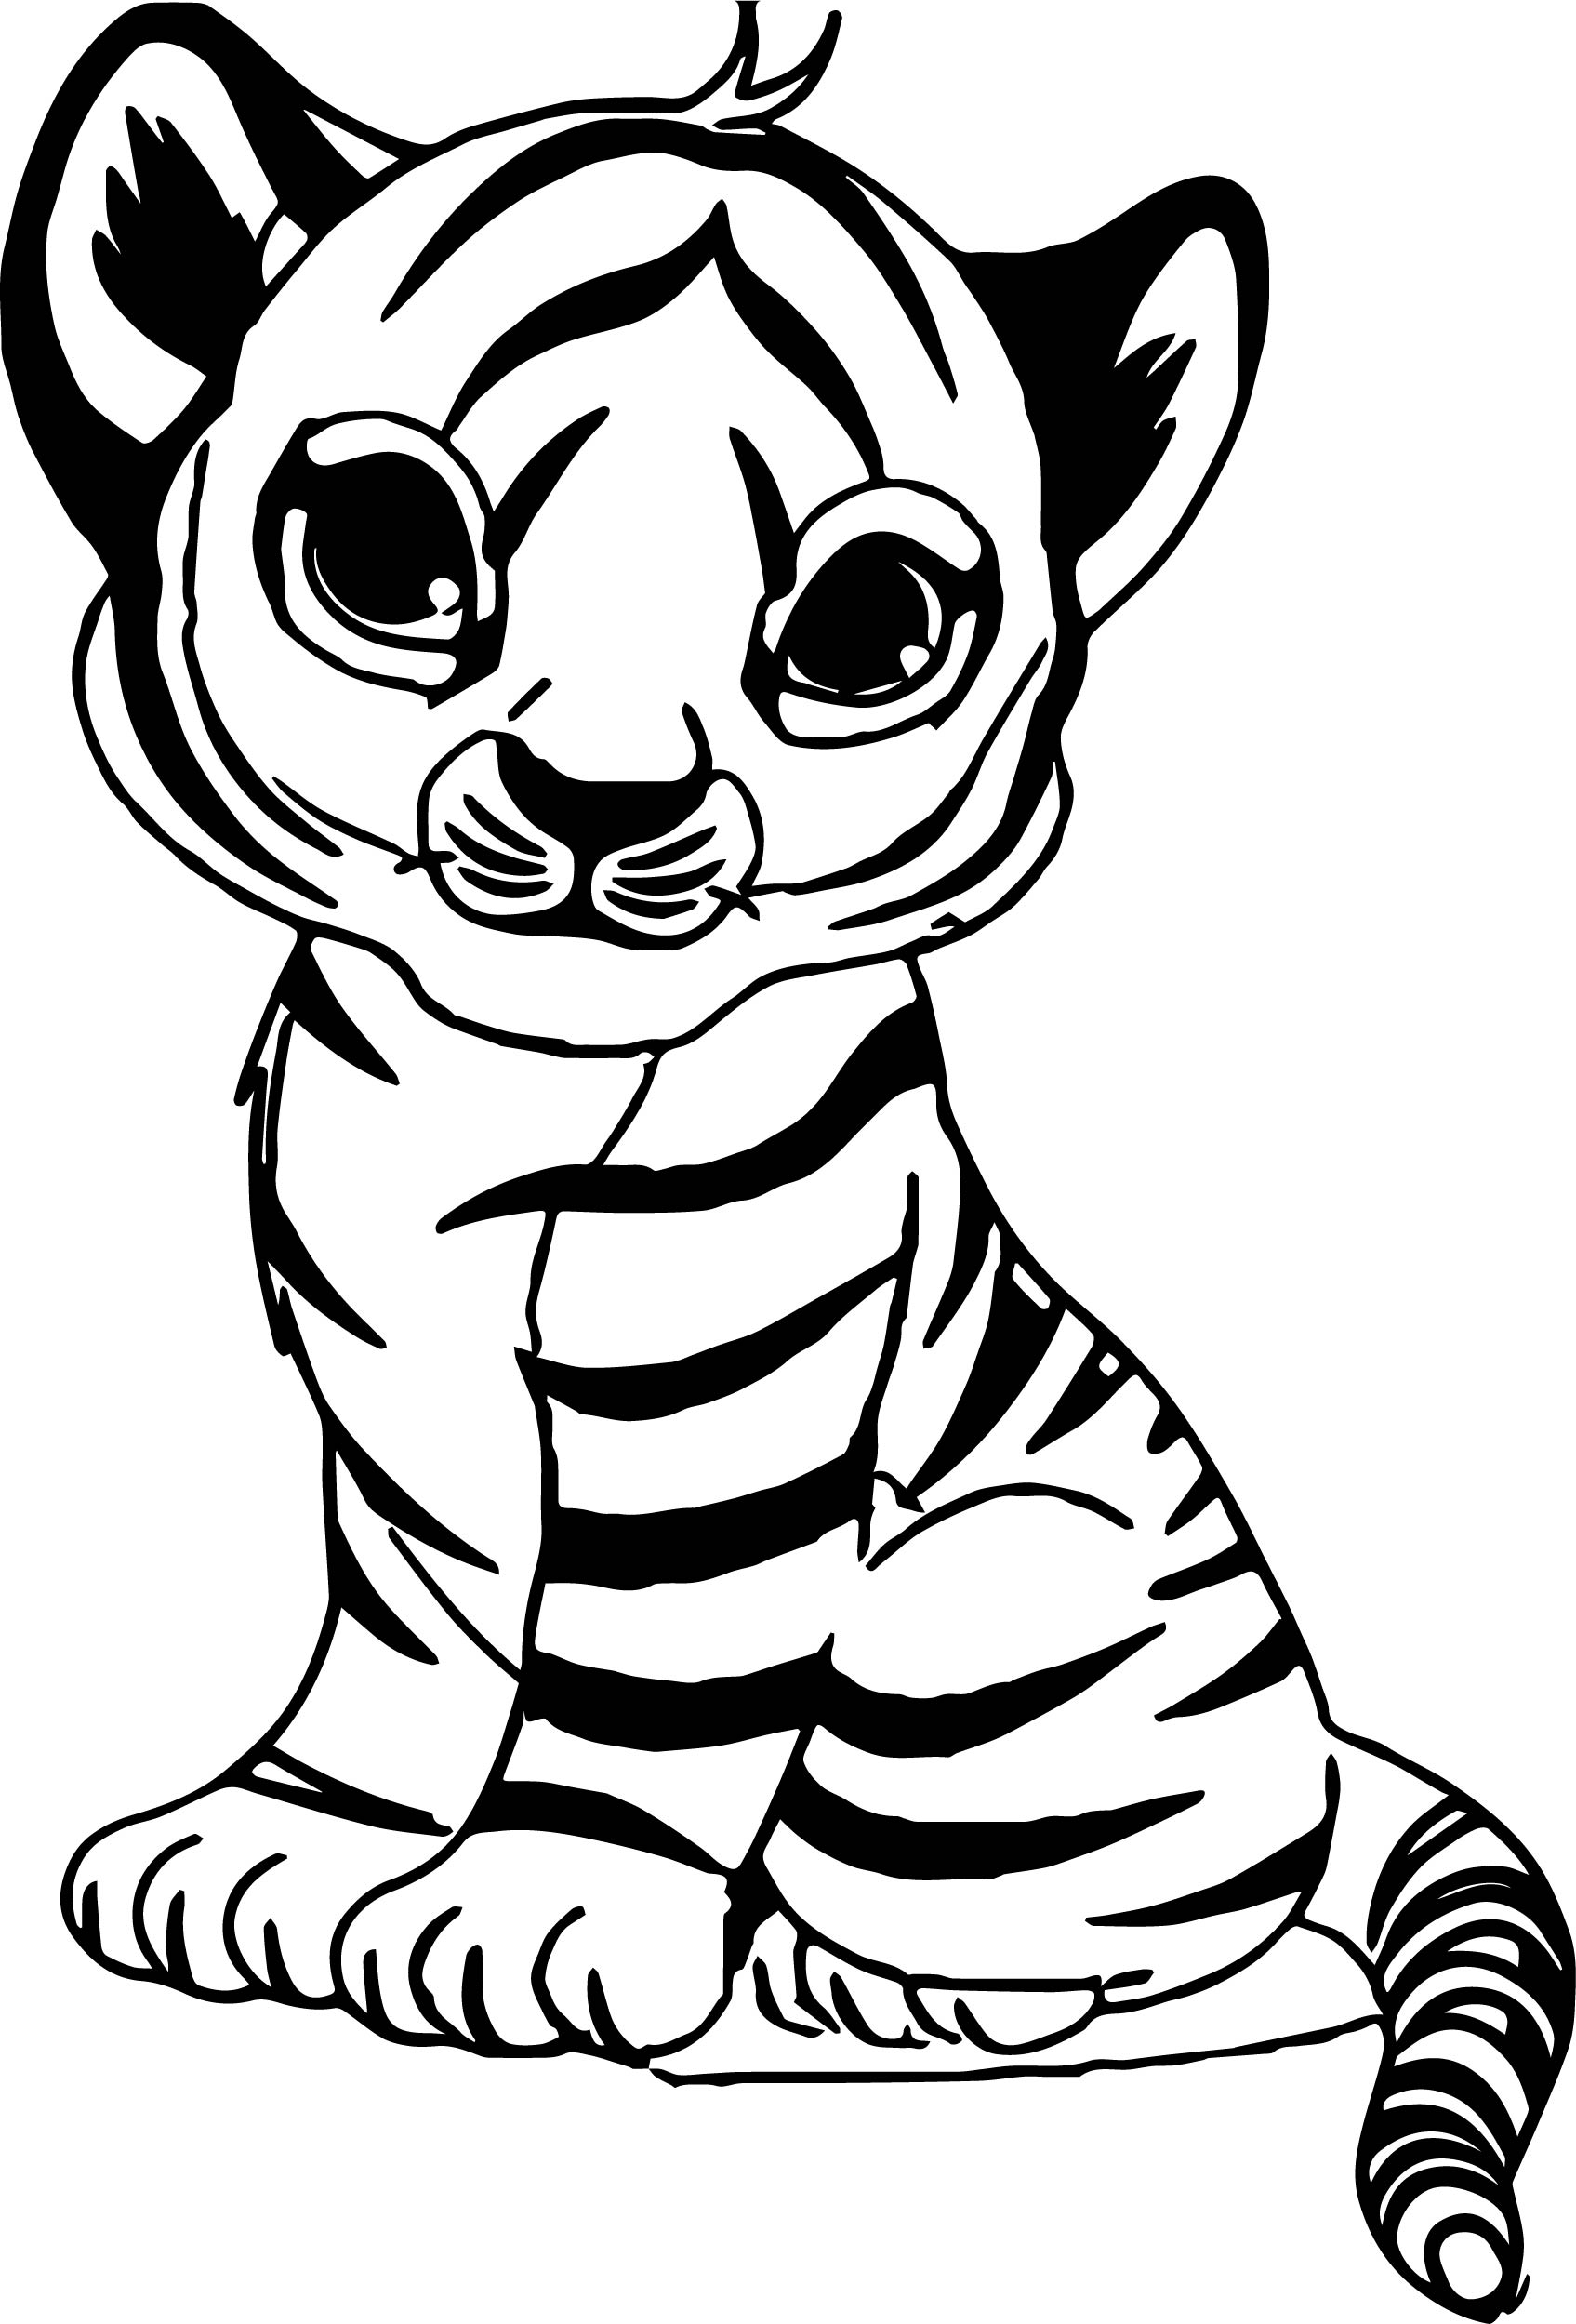 coloring page tiger free tiger coloring pages tiger coloring page